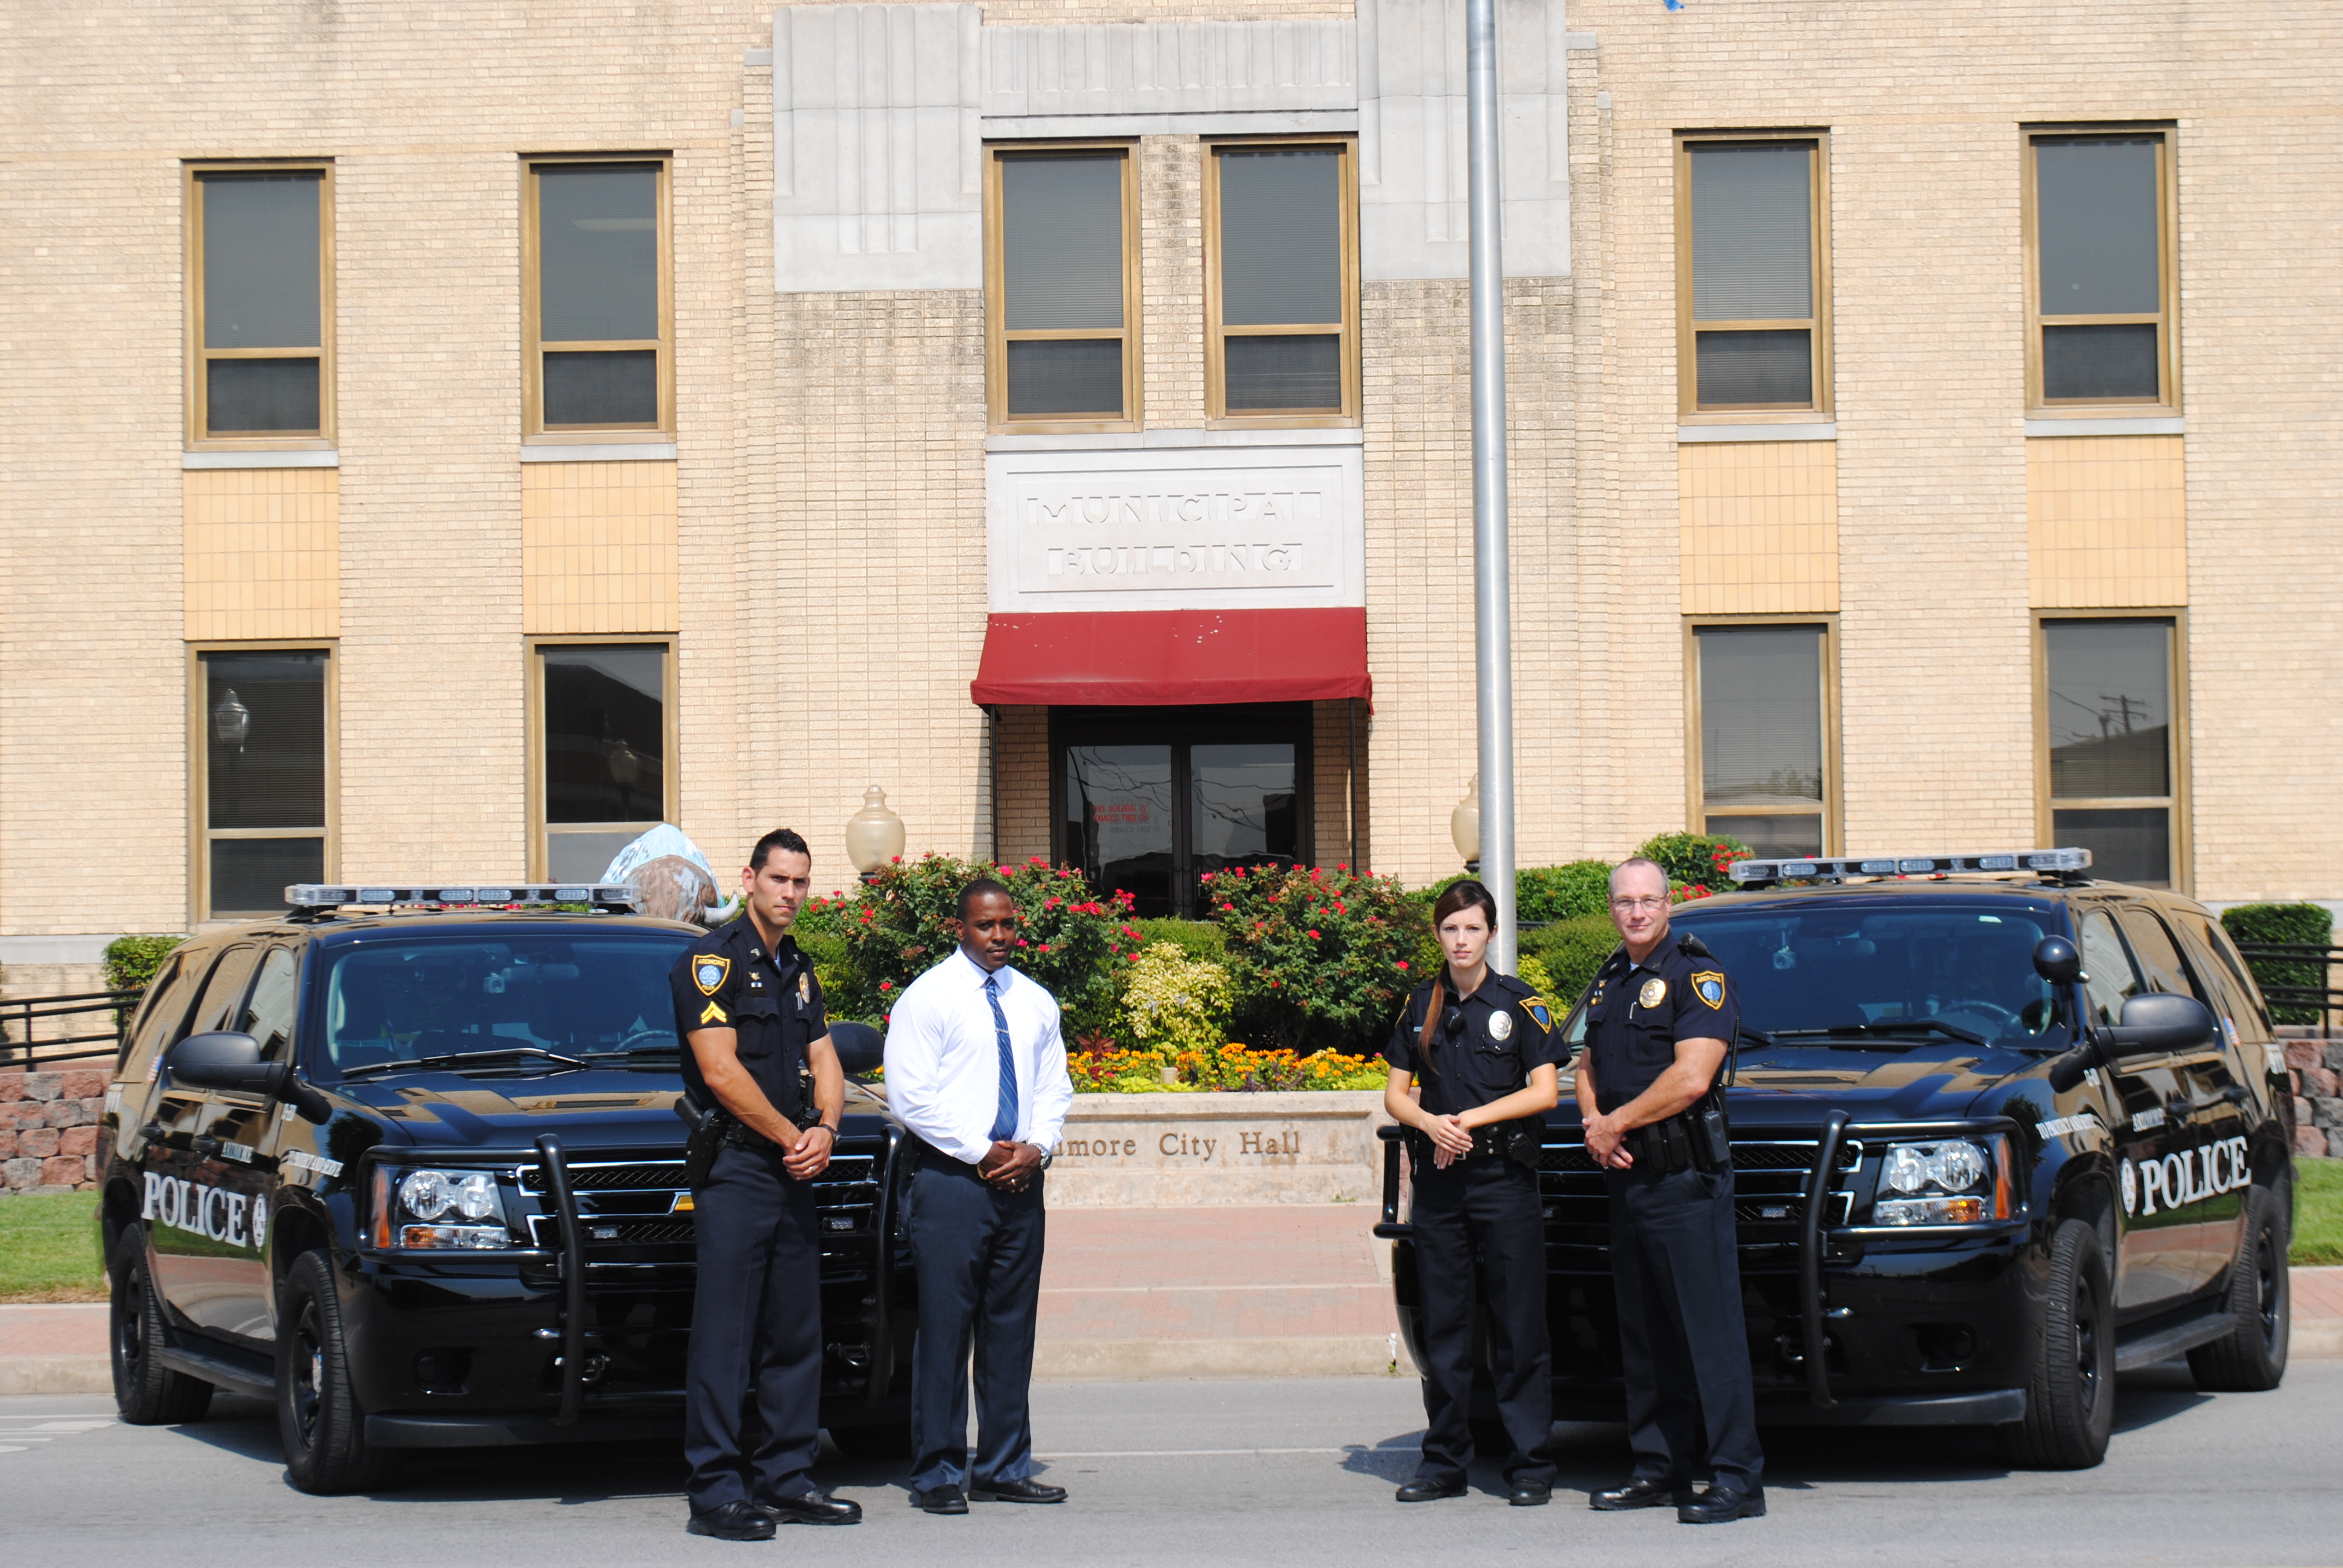 photo of four officers and two police units in front of city hall